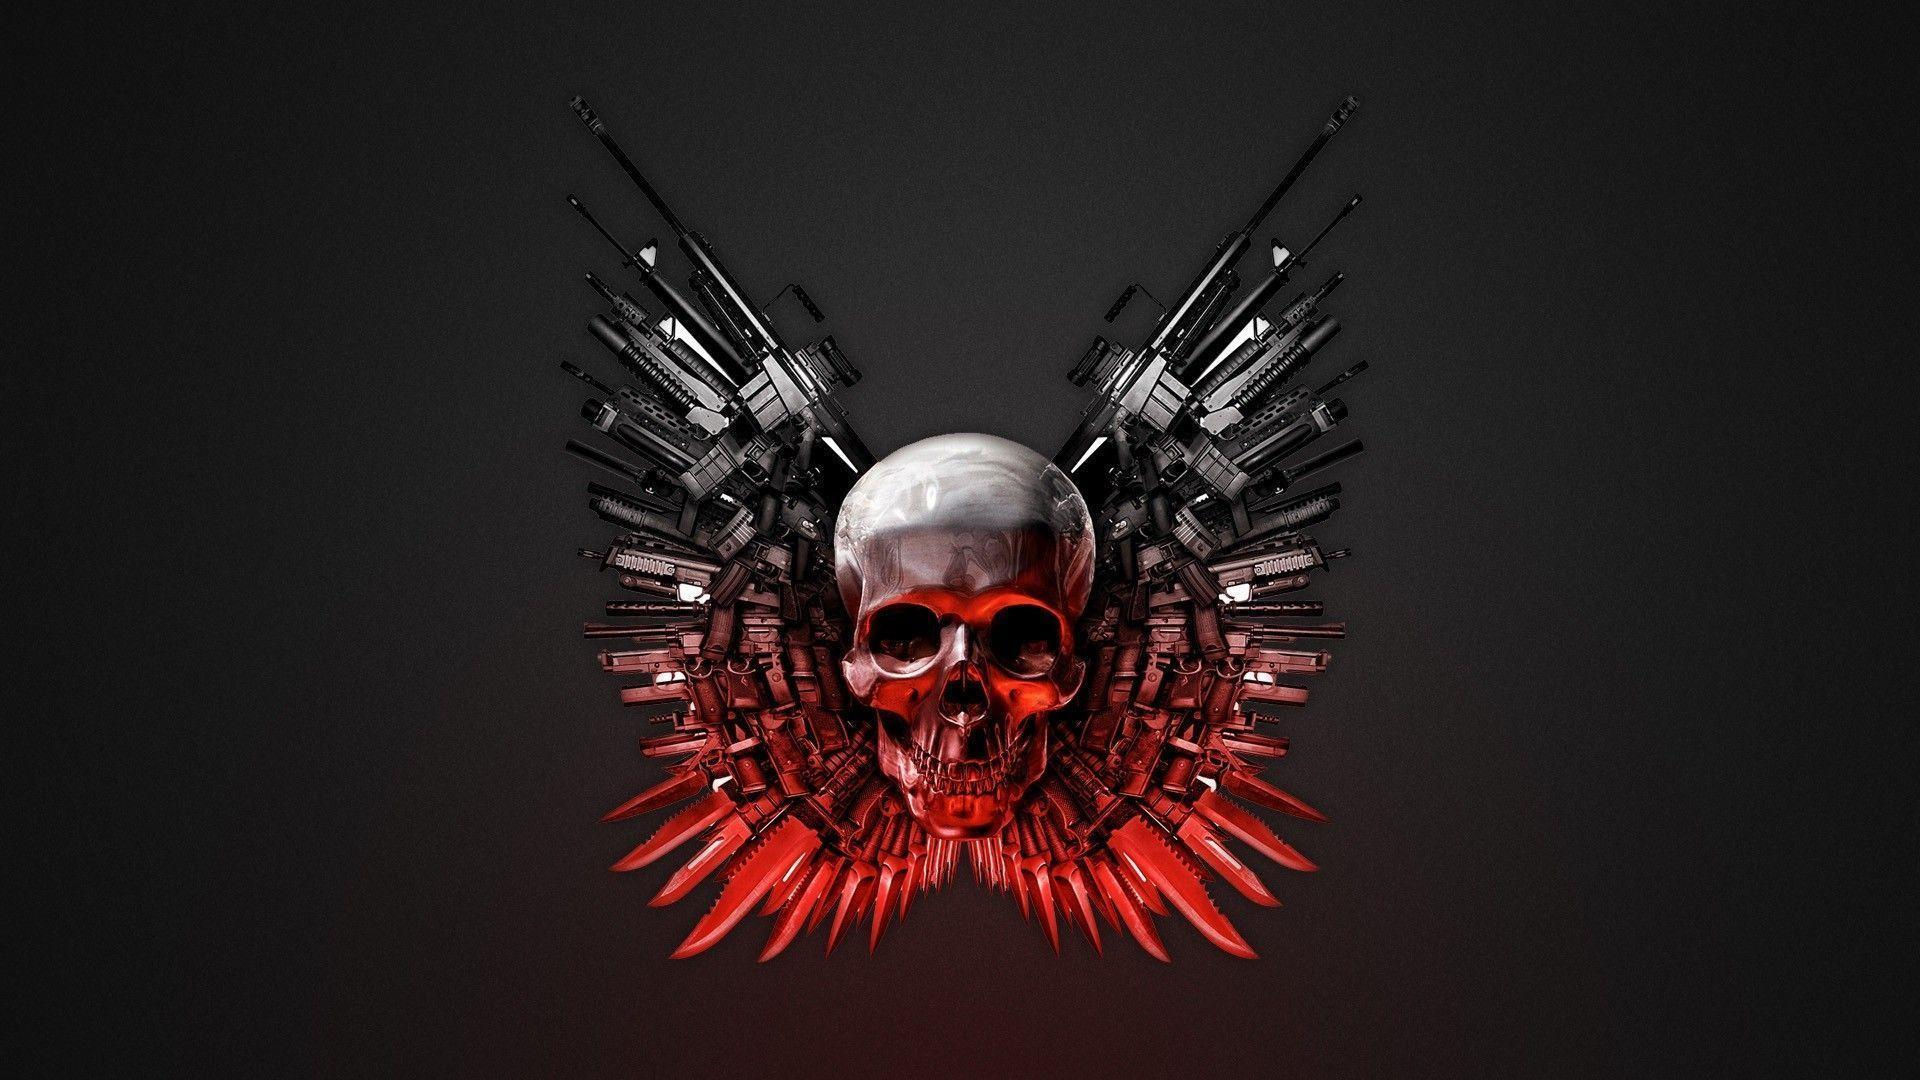 Abstract Skull Wallpapers - Wallpaper Cave